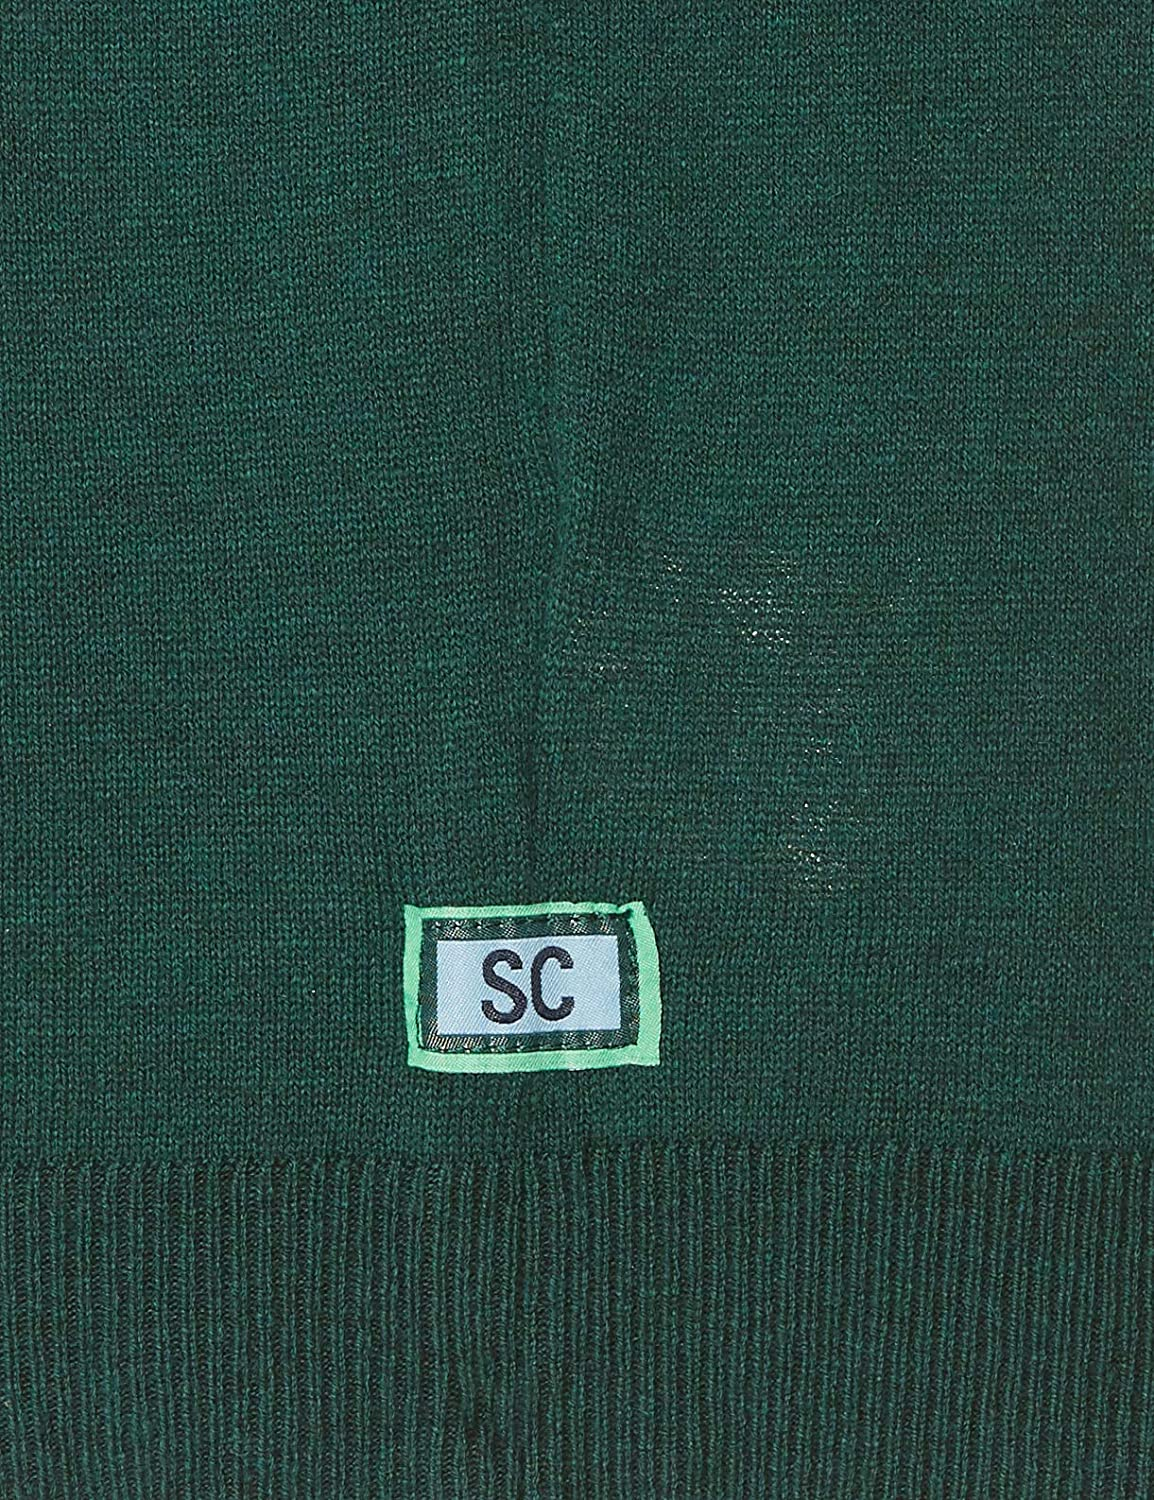 Felpa Bambino Scotch /& Soda Crew Neck Pull with Color Pop Details in Soft Quality